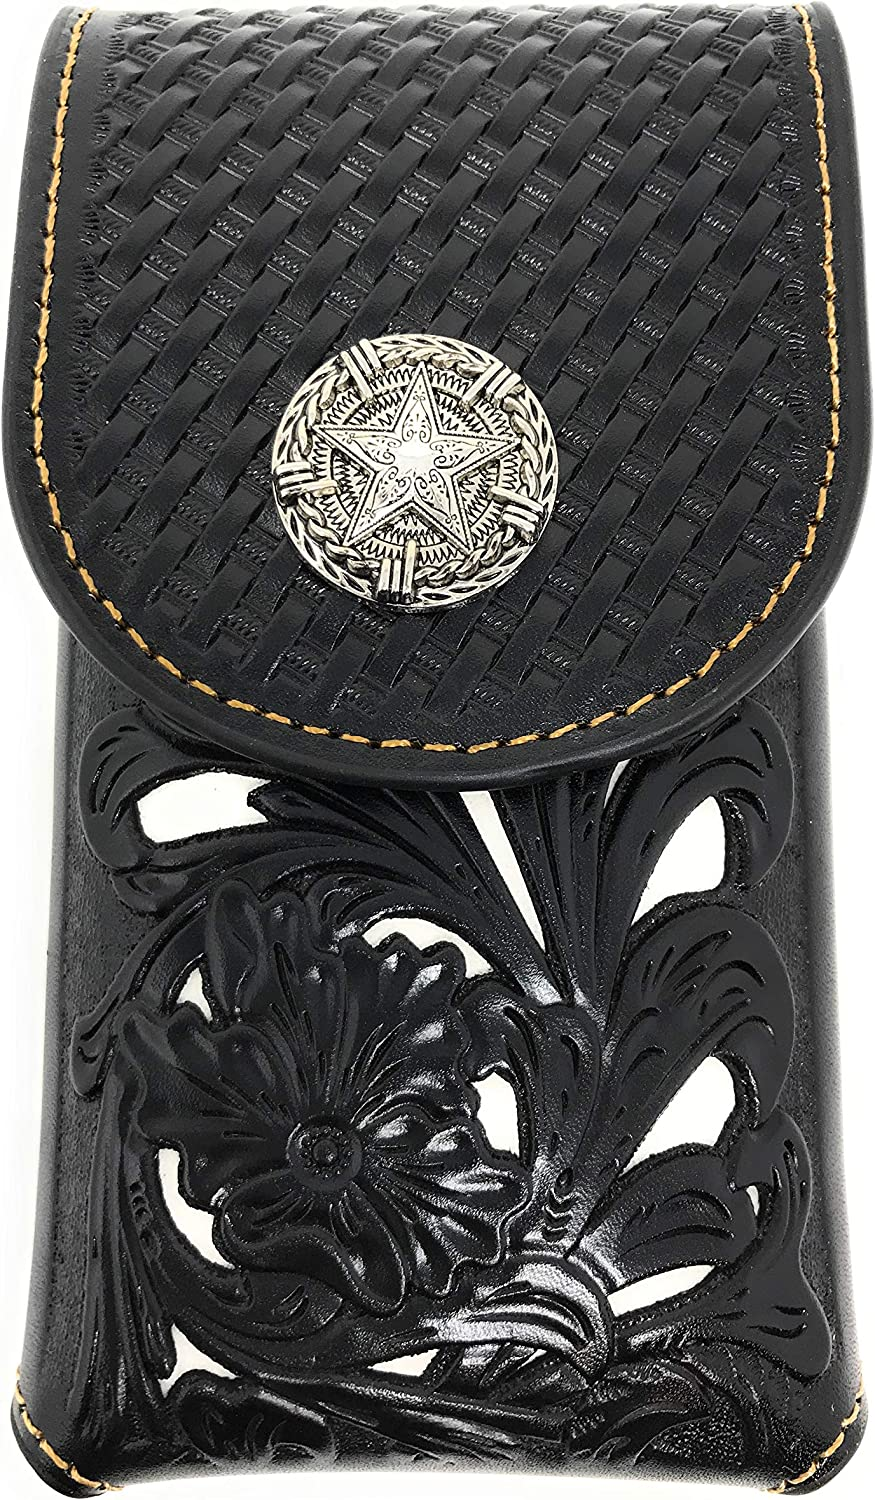 Texas West Western Cowboy Tooled Floral Leather Lone Star Concho Belt Loop Medium Cell Phone Holster Case (Black/Beige)